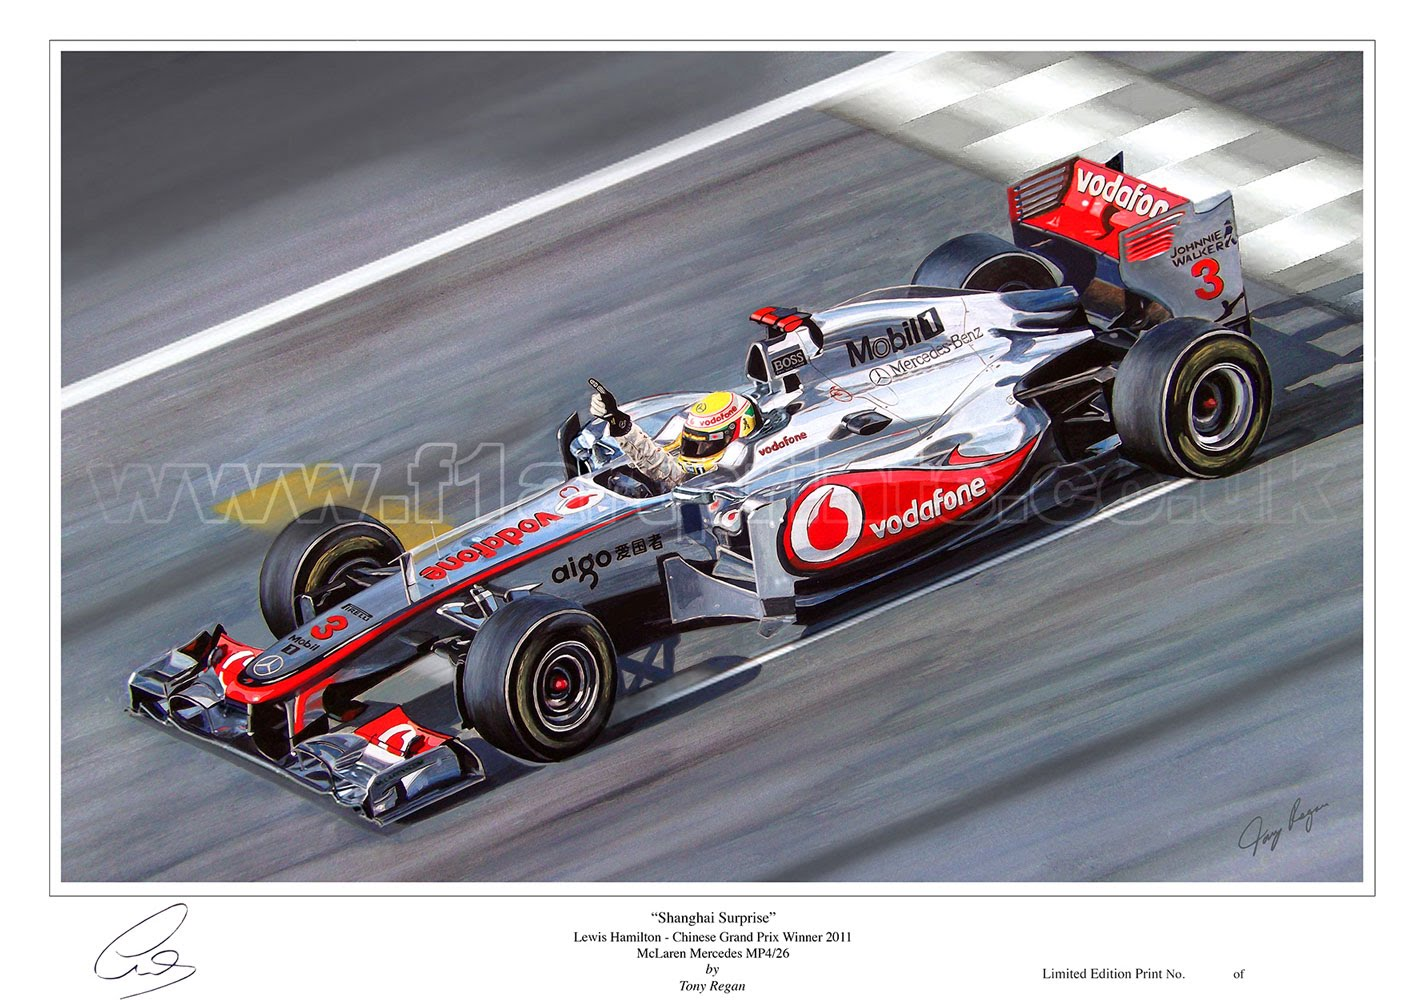 Lewis-Hamilton-McLaren-MP4/26-China-2011-Art.jpg